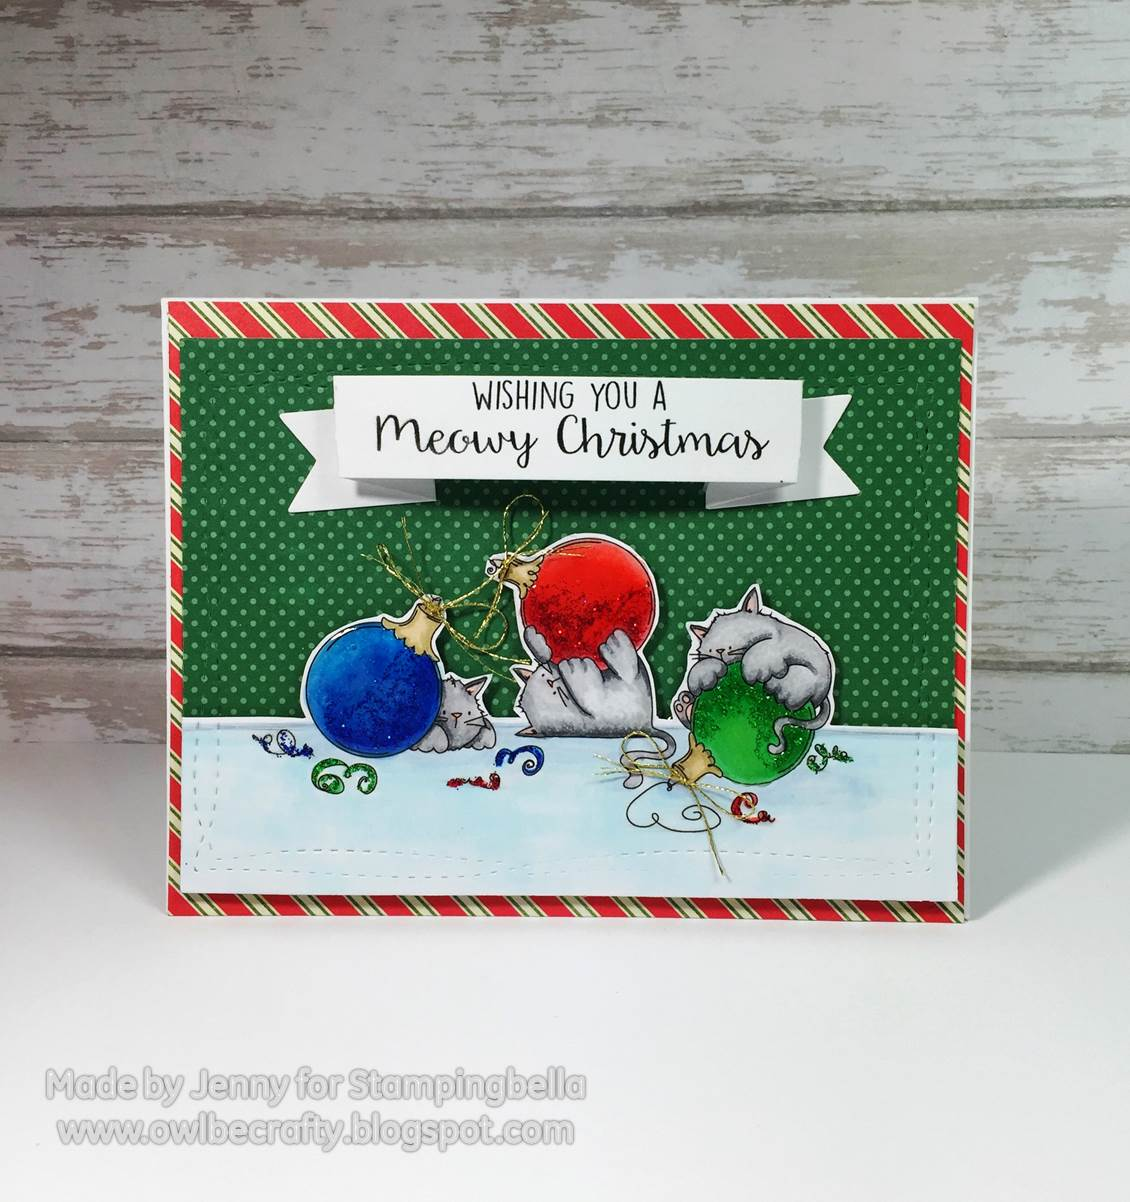 Stamping Bella HOLIDAY RELEASE -SNEAK PEEK DAY 3 -MEOWY CHRISTMAS